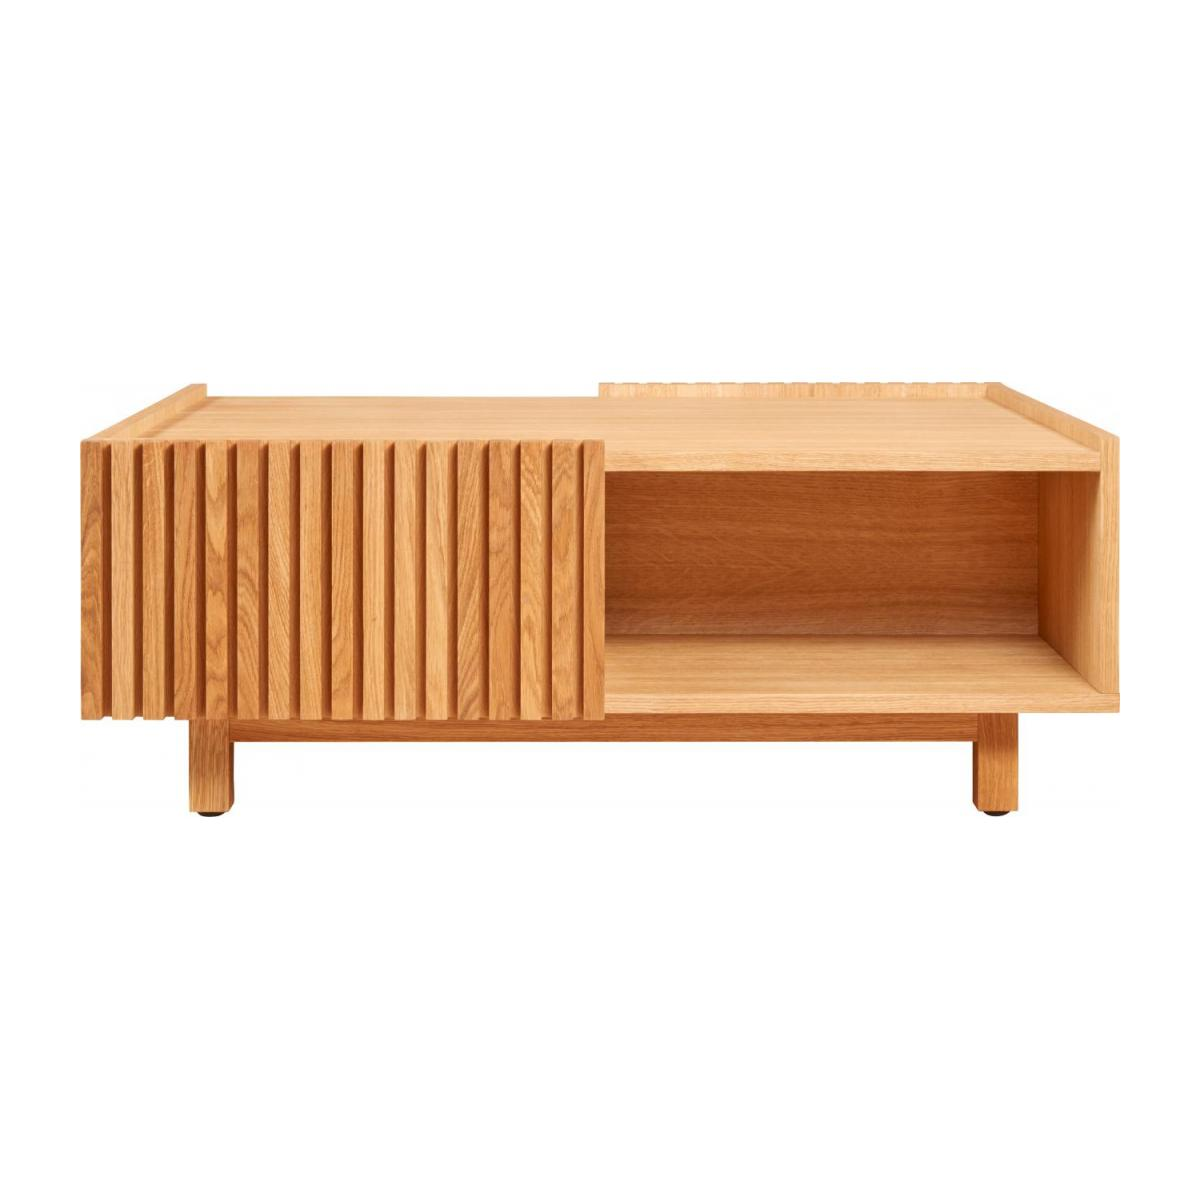 Oak low table n°3